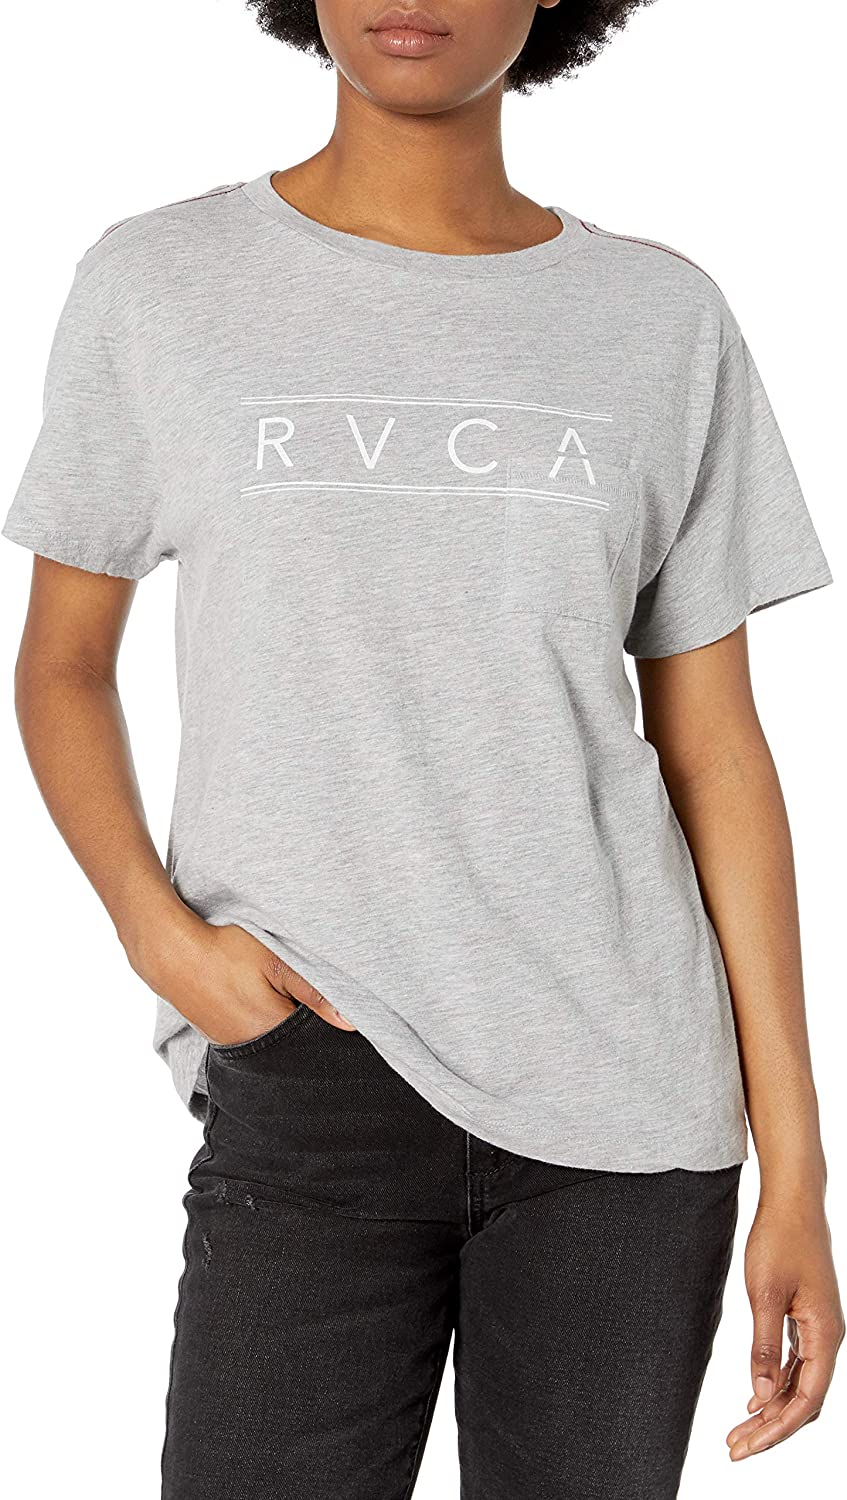 RVCA Womens Fast Script Short Sleeve Crew Neck Pocket T-Shirt